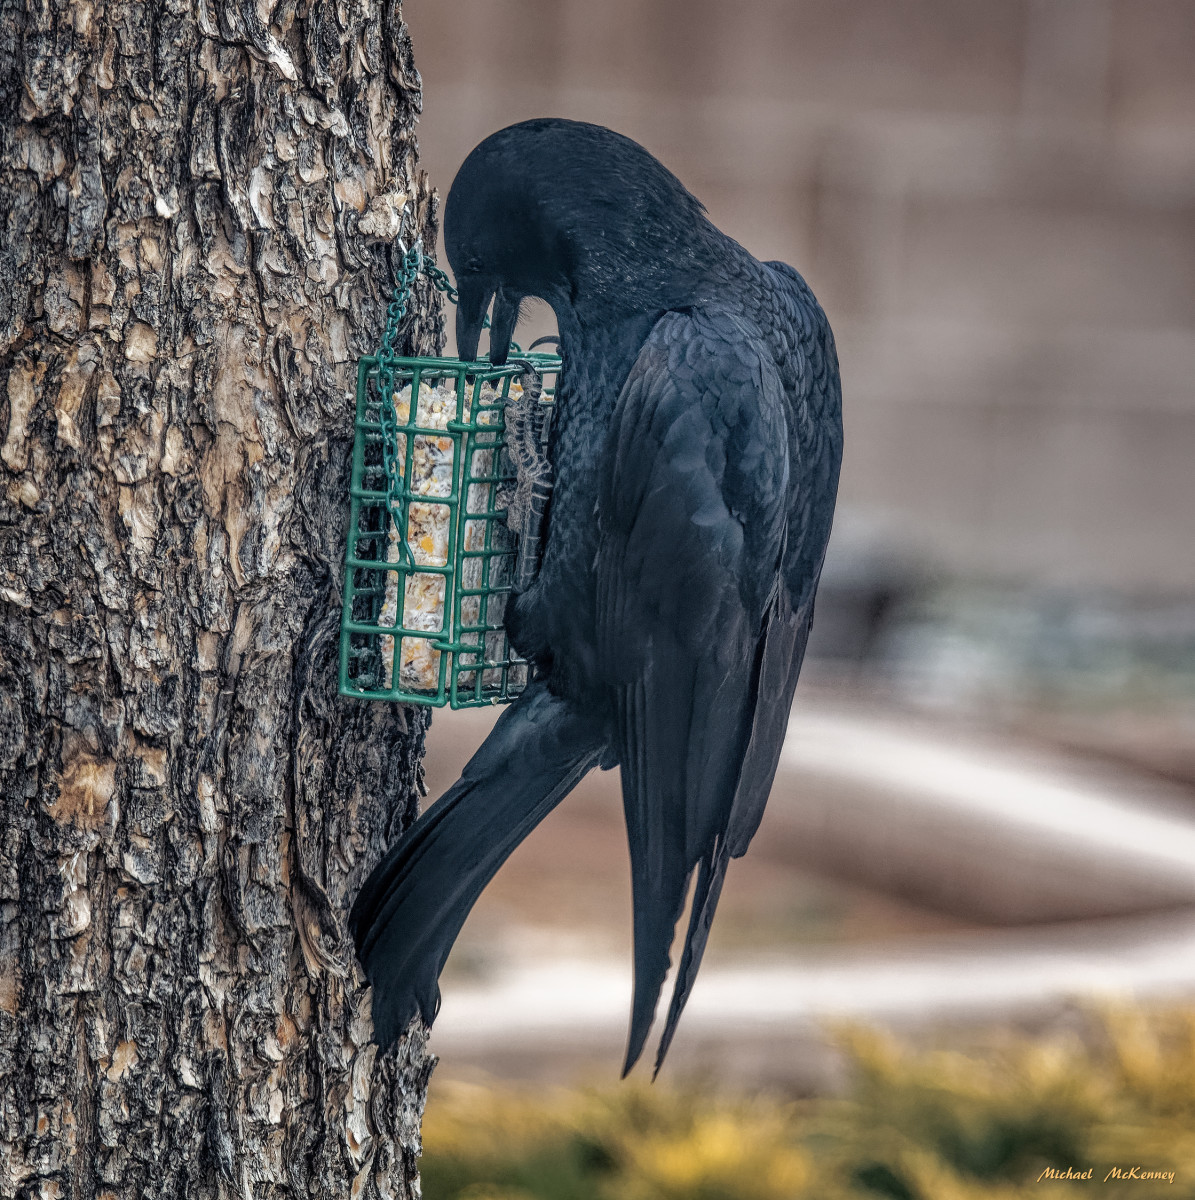 Loud, Curious American Crows: Most People Either Love Them or Hate Them